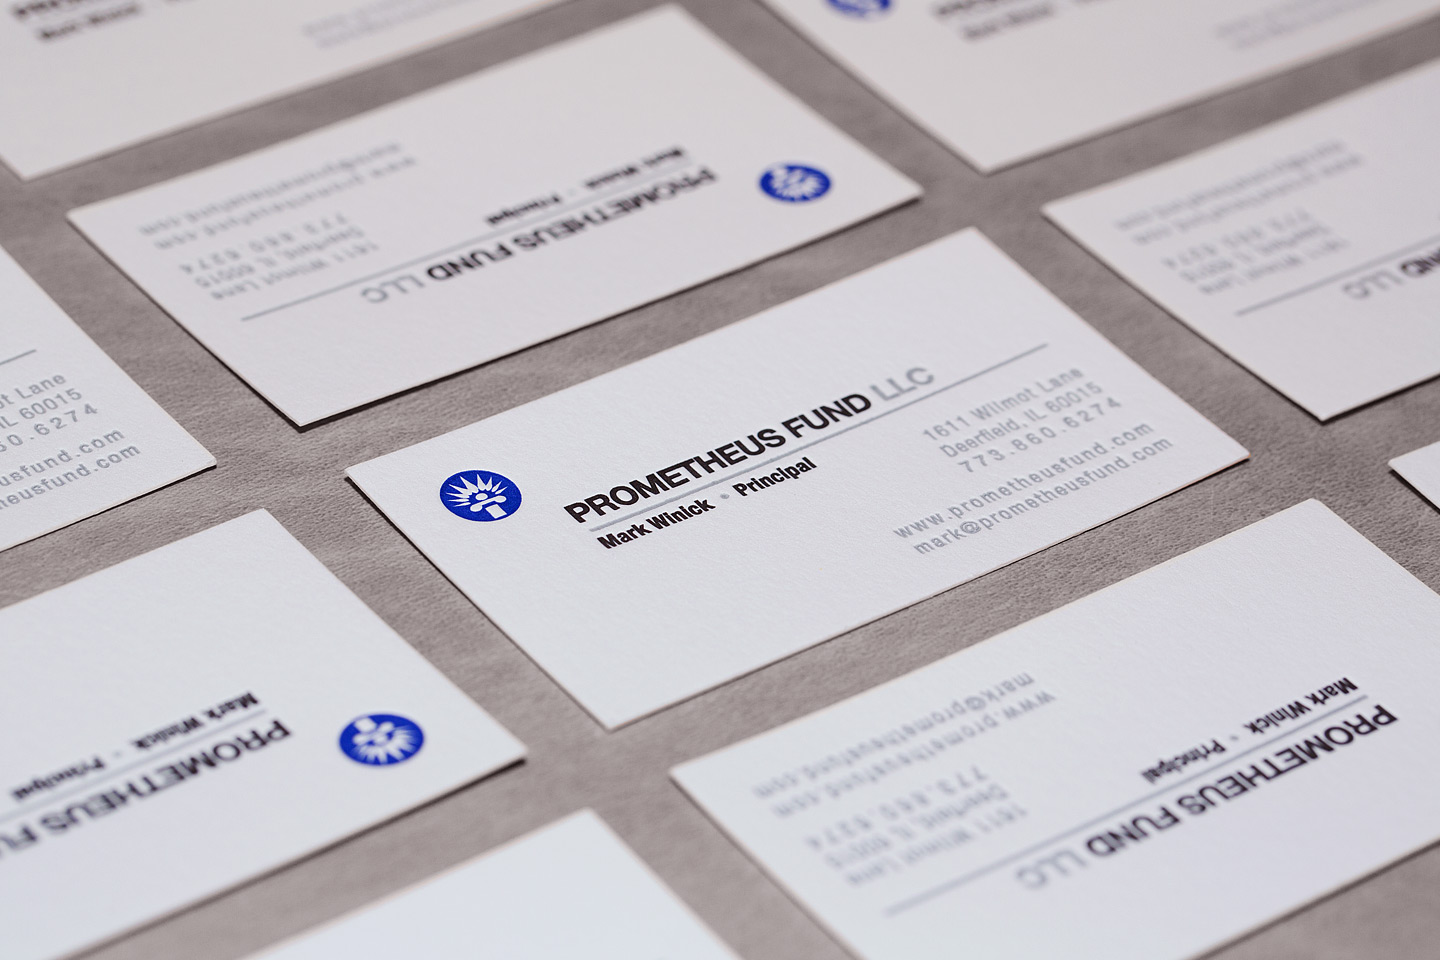 a bunch of prometheus fund llc letterpress business cards laid out in a grid